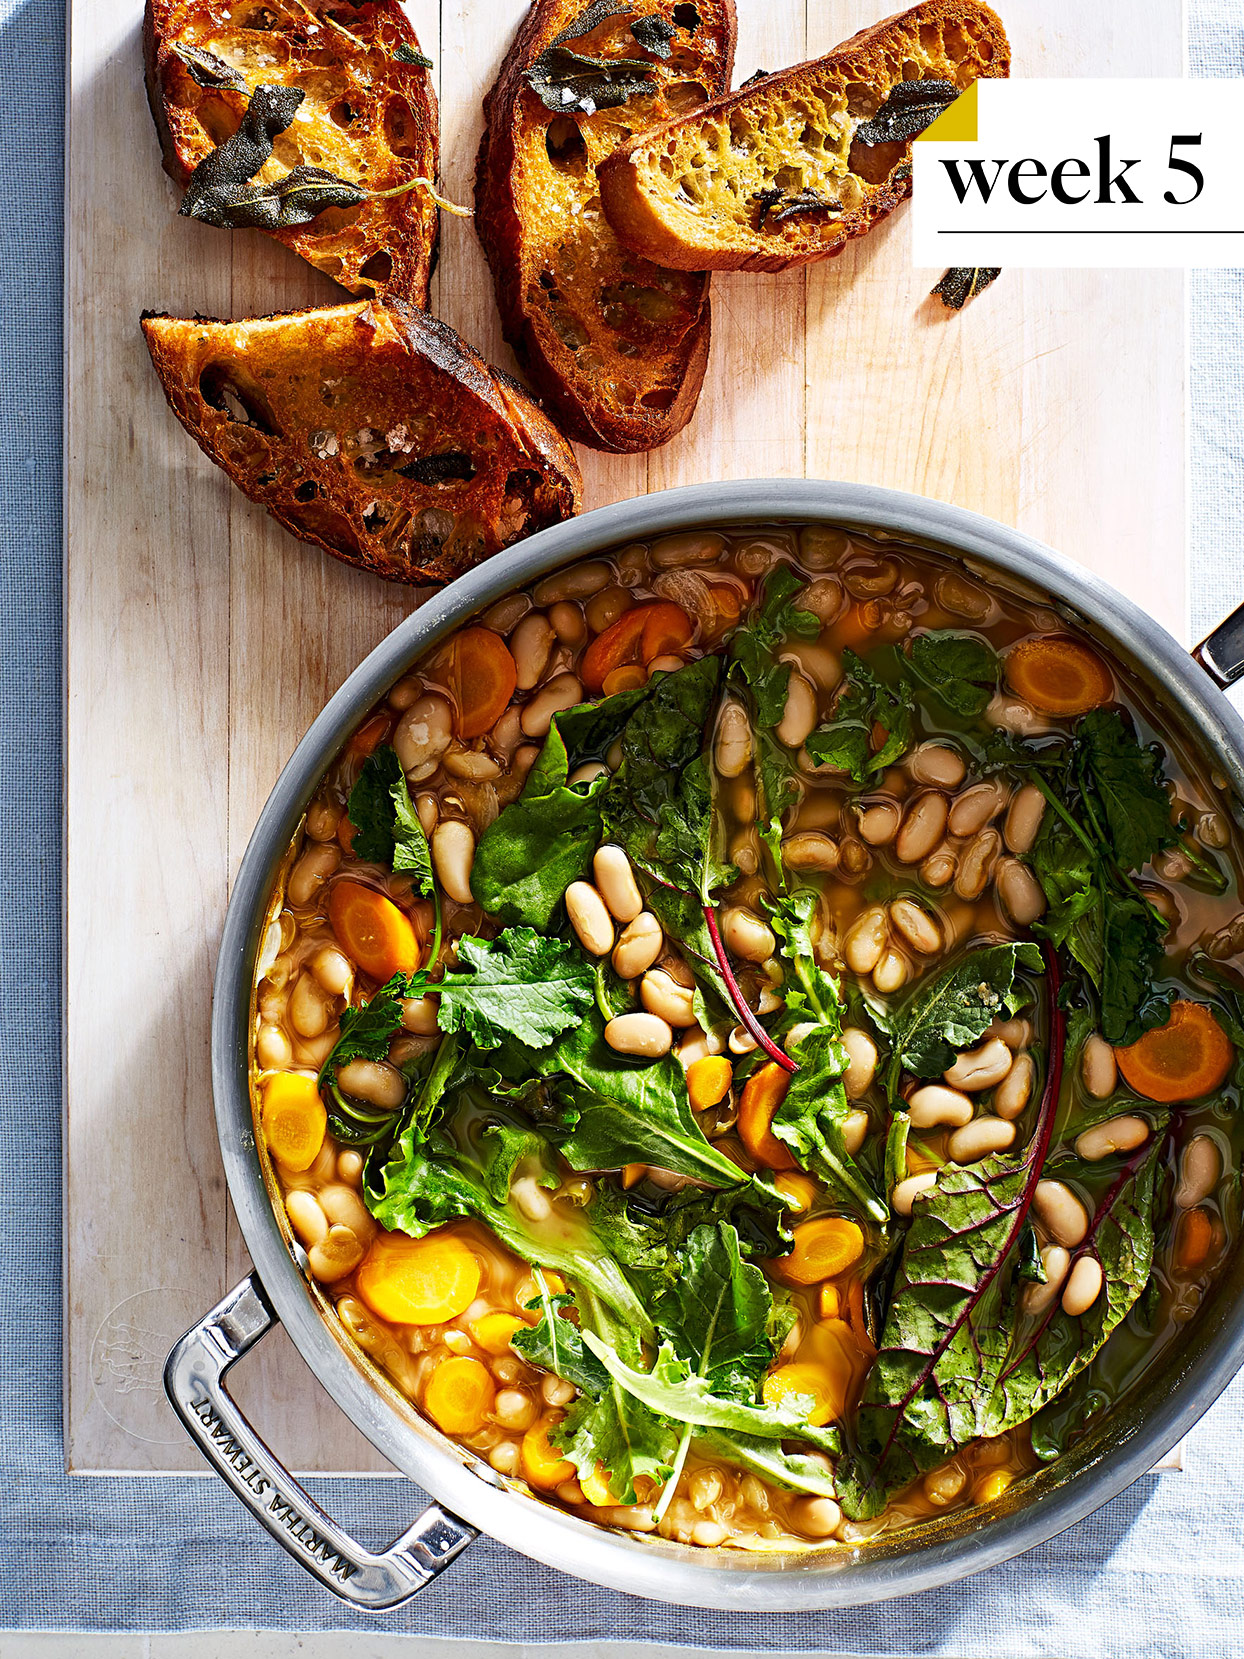 cannellini bean and greens stew with bread